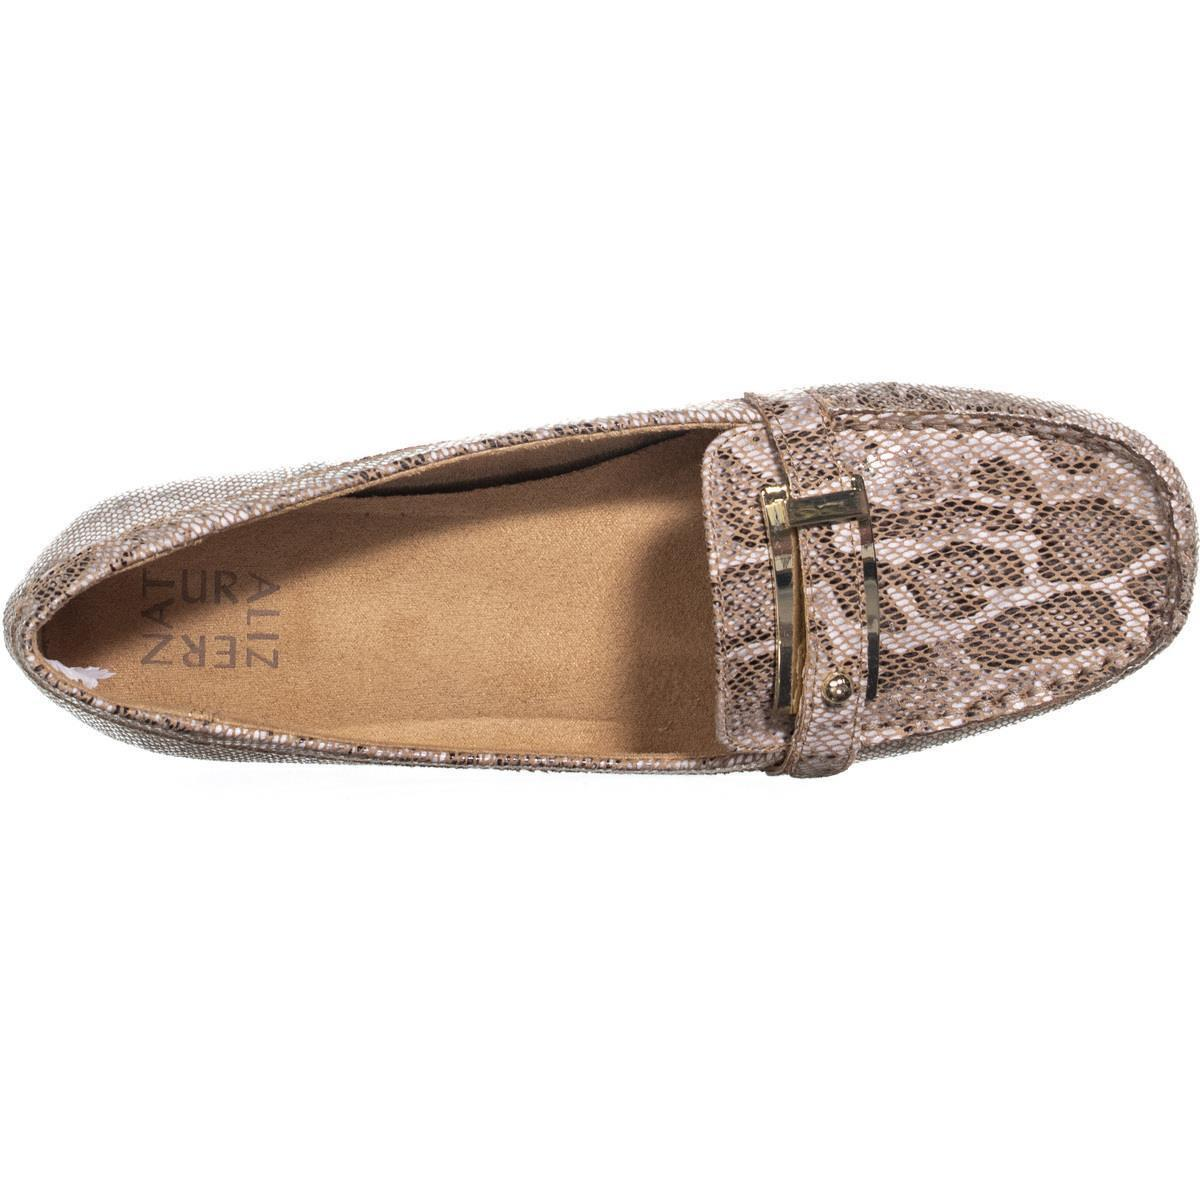 facd9960244 Naturalizer Gisella Loafer in Purple - Lyst